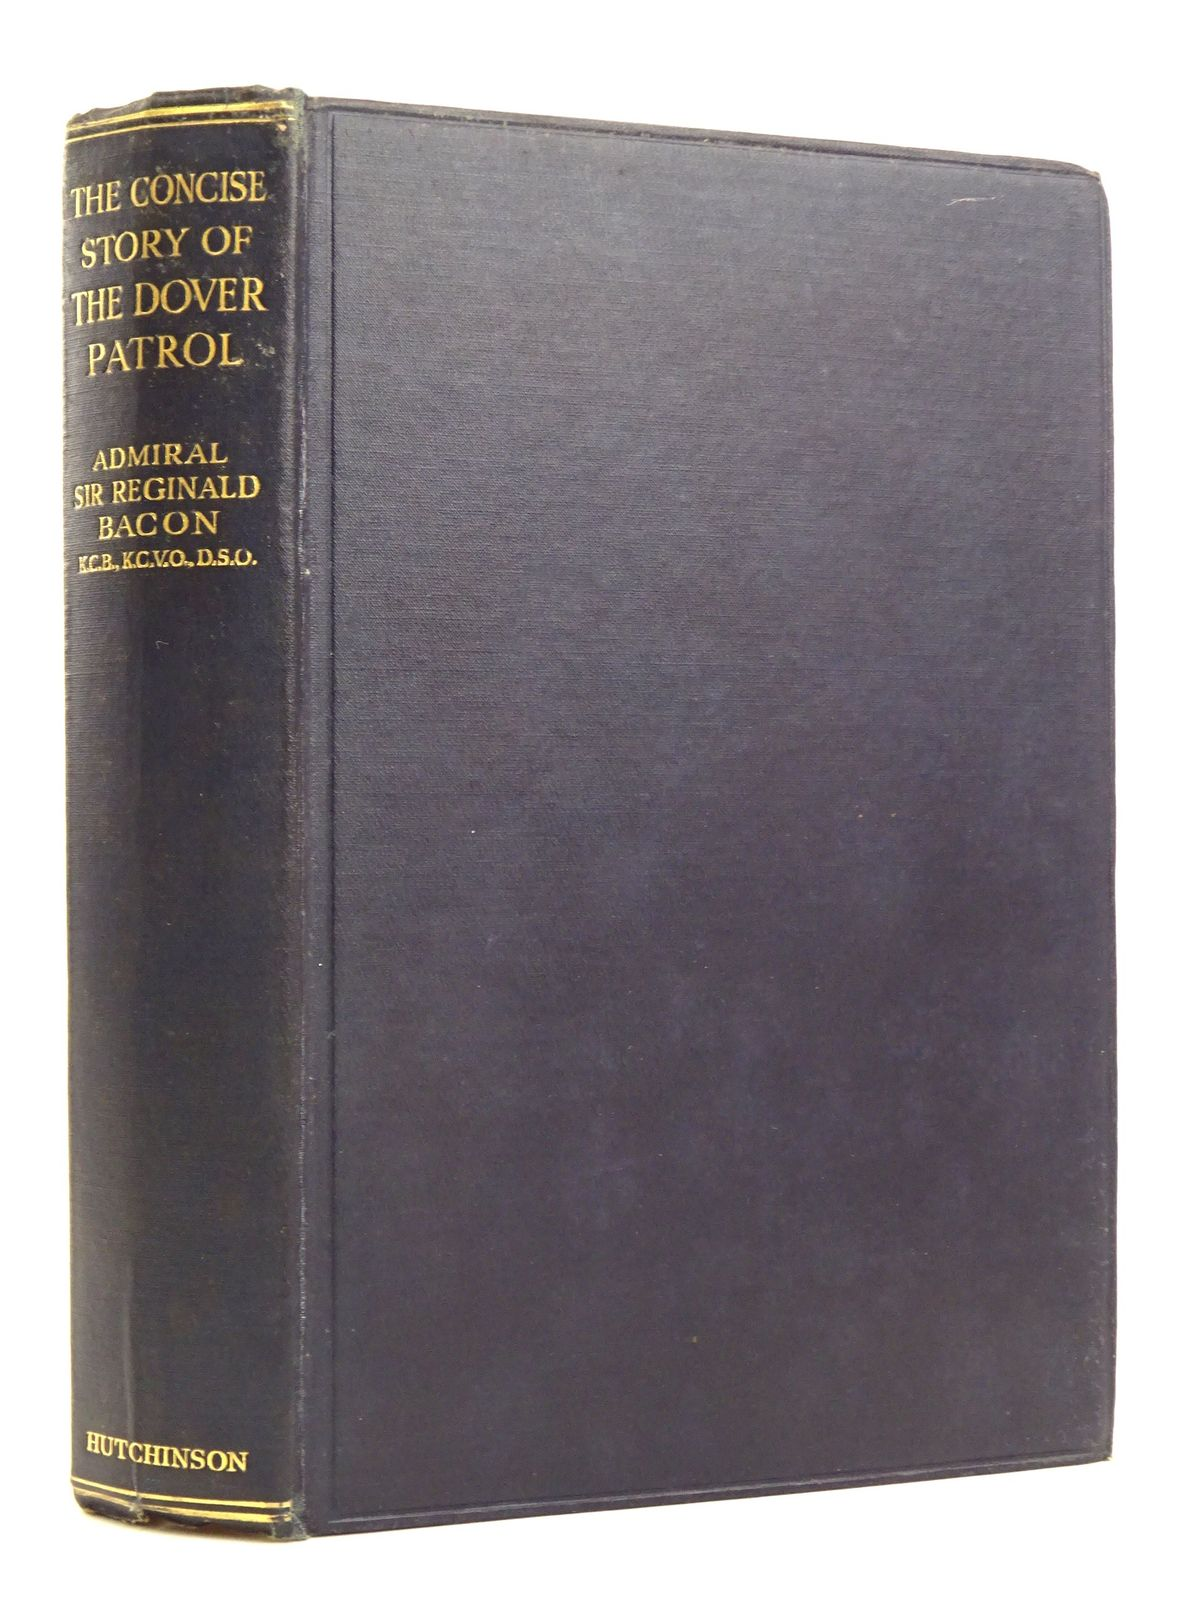 Photo of THE CONCISE STORY OF THE DOVER PATROL written by Bacon, R.H. published by Hutchinson & Co. (STOCK CODE: 1818288)  for sale by Stella & Rose's Books